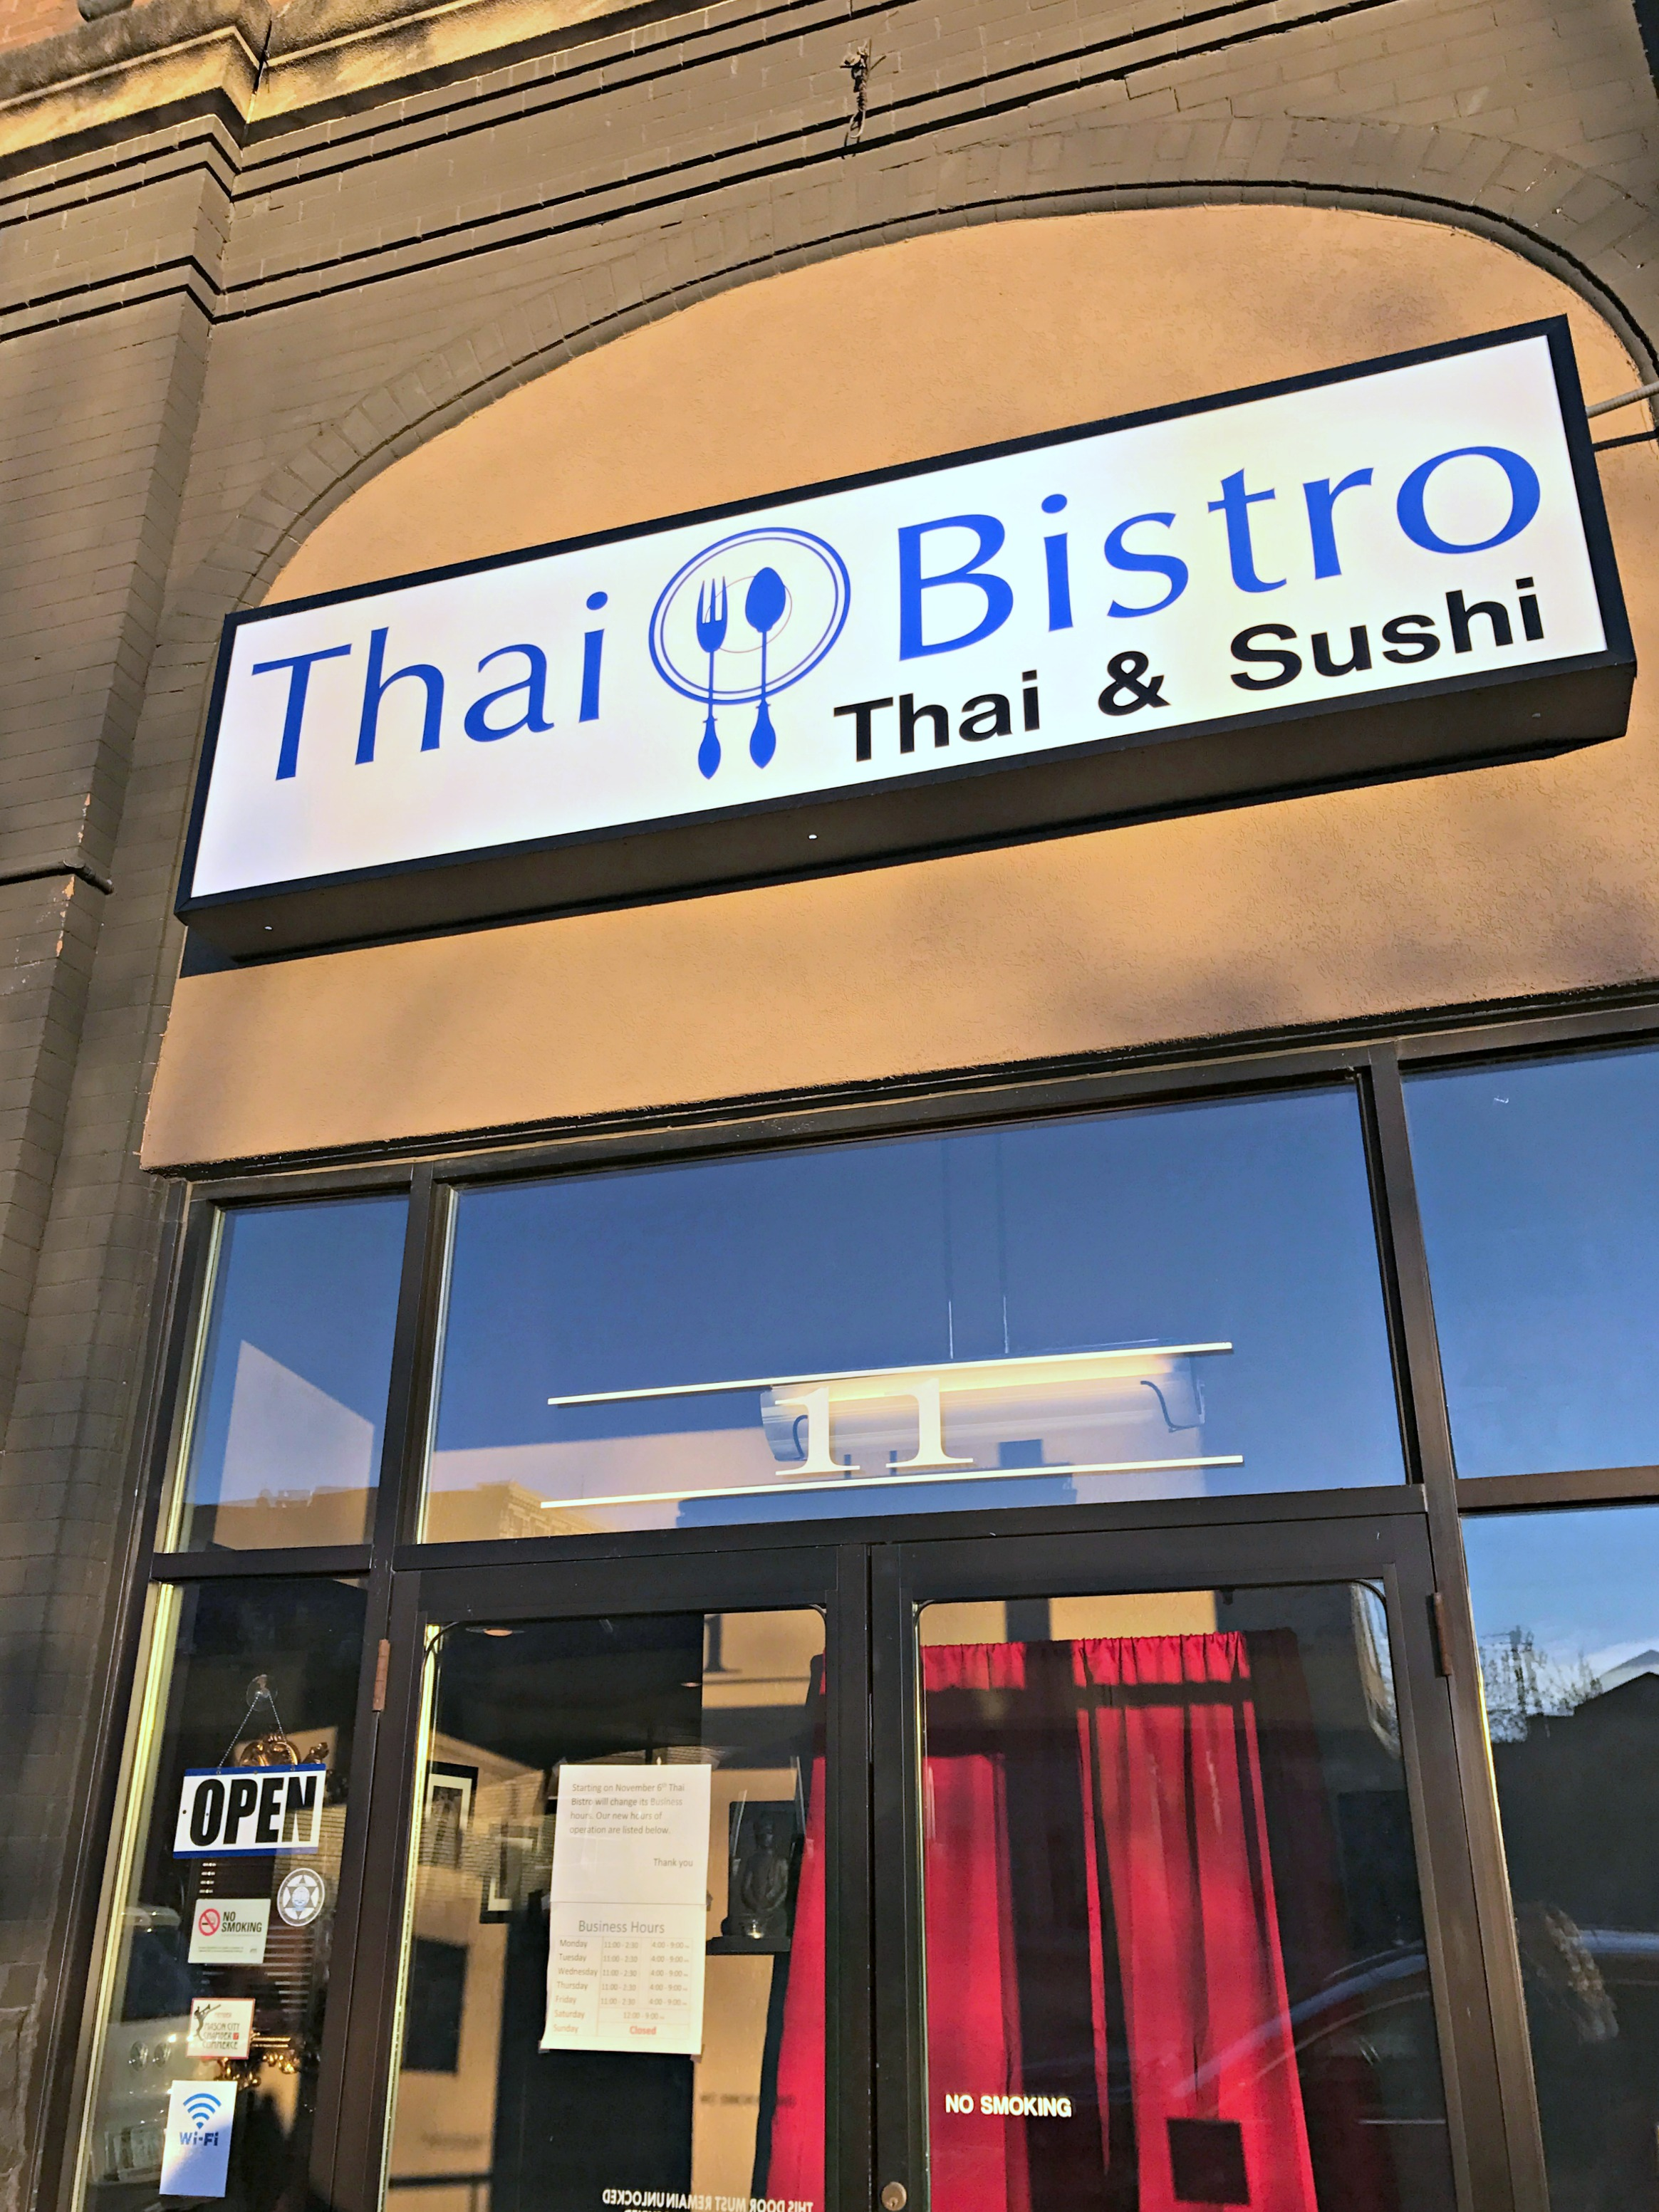 Date Night at Thai Bistro in Mason City